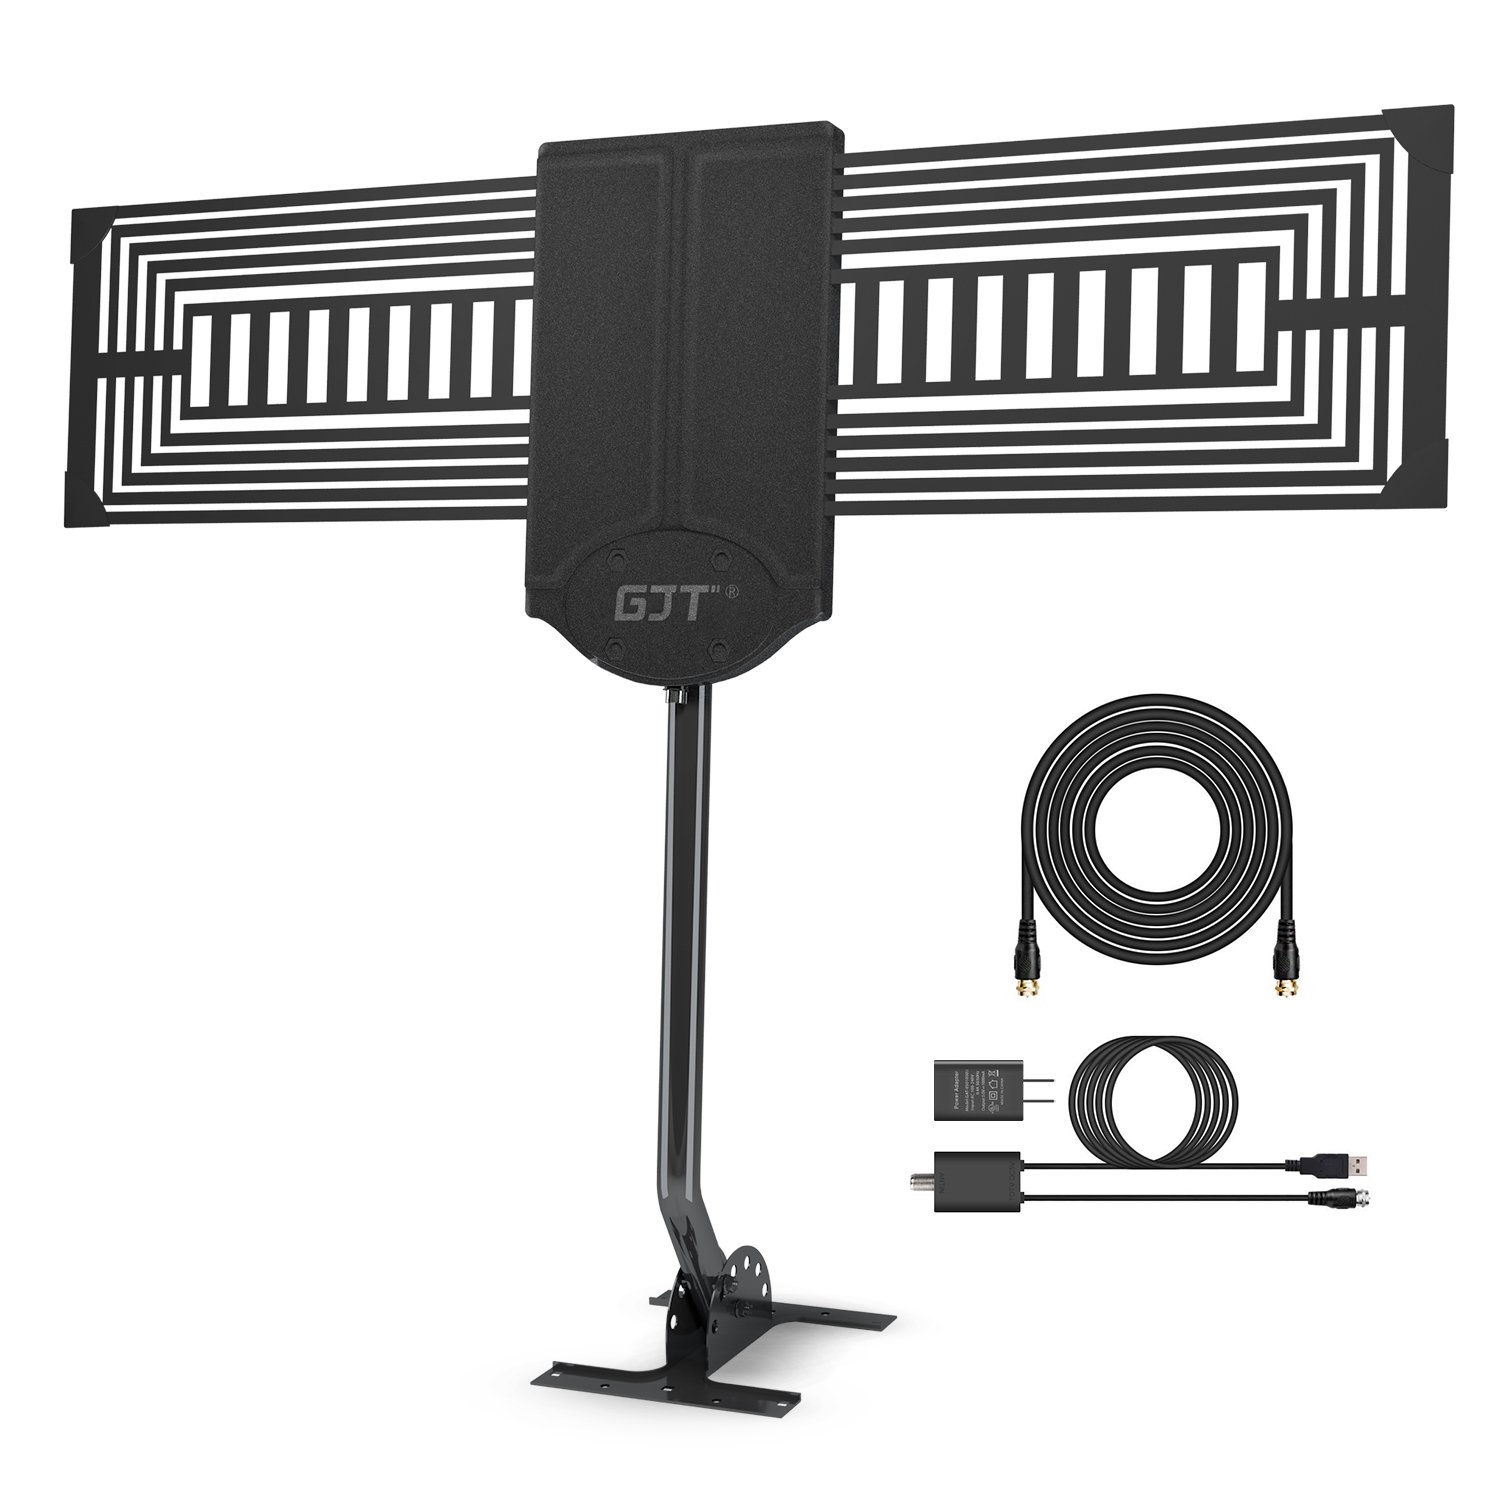 GJT Outdoor TV Antenna 150 Miles Range High Reception Digital HDTV Attic/Roof Antenna with Amplifier and Mount Kit for Free Channel,30ft High Performance Coax Cable with Adapter